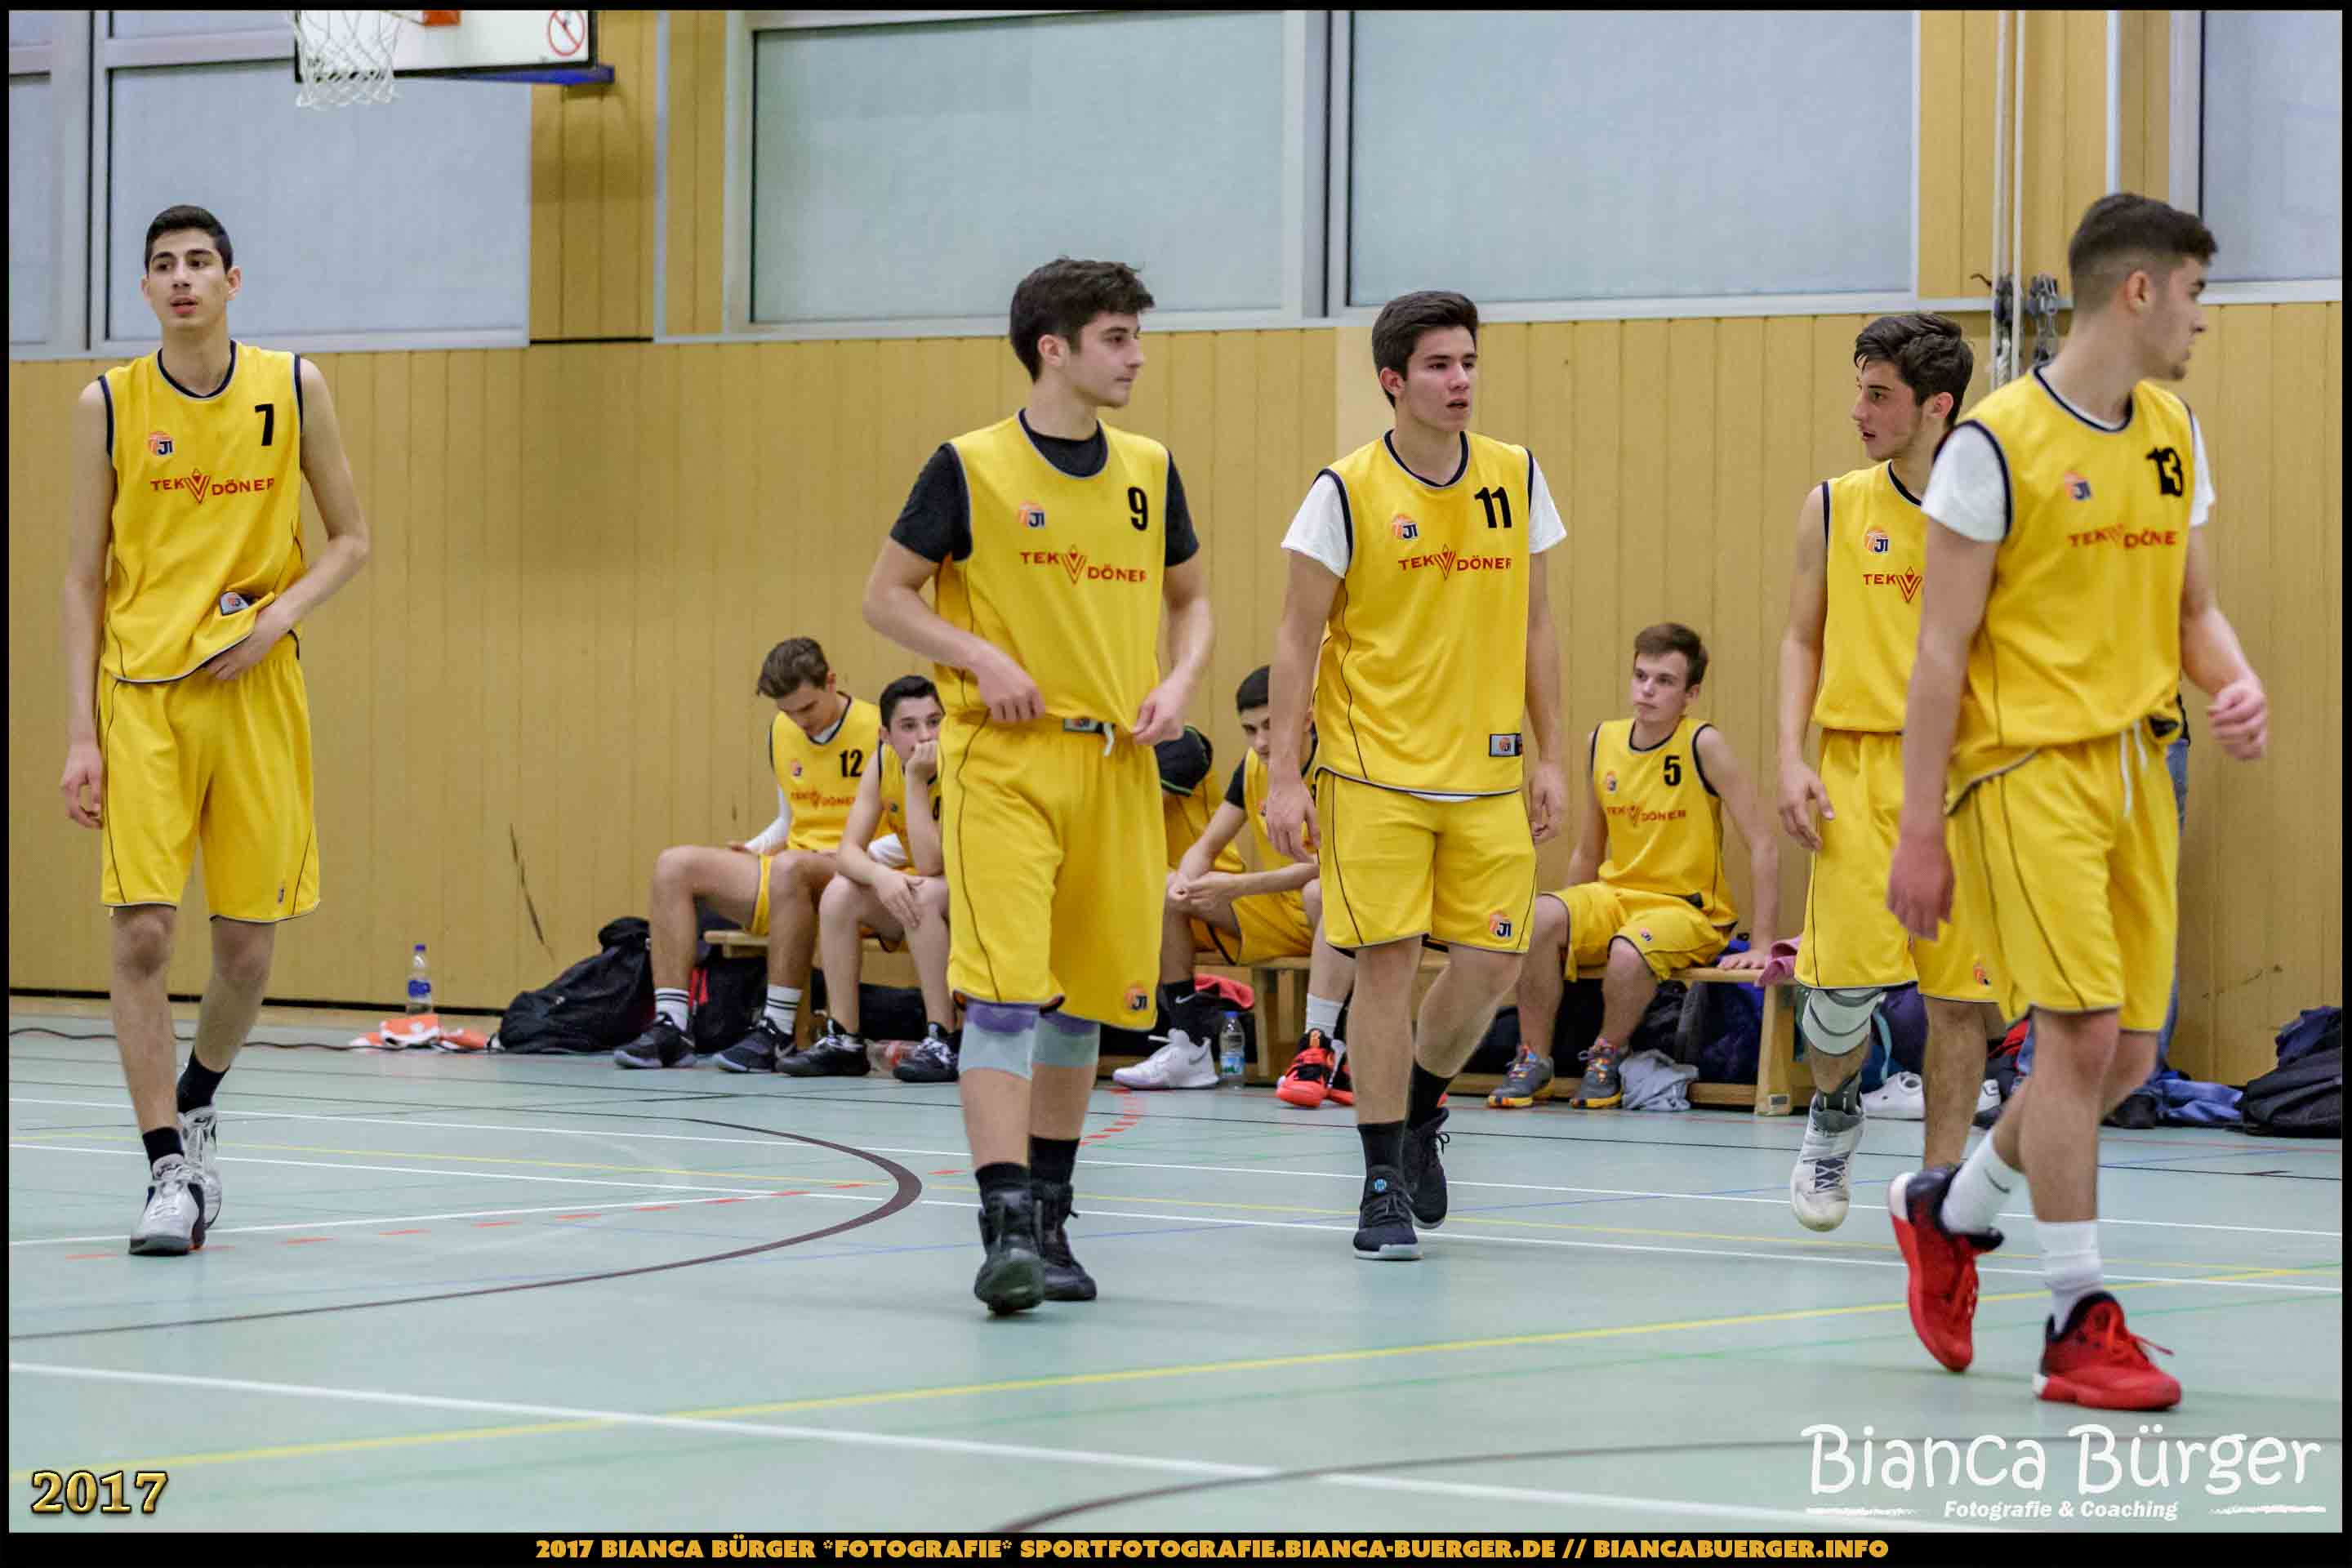 LLmU20 - Weddinger Wiesel 1 vs TSC Spandau 1 (Basketball)